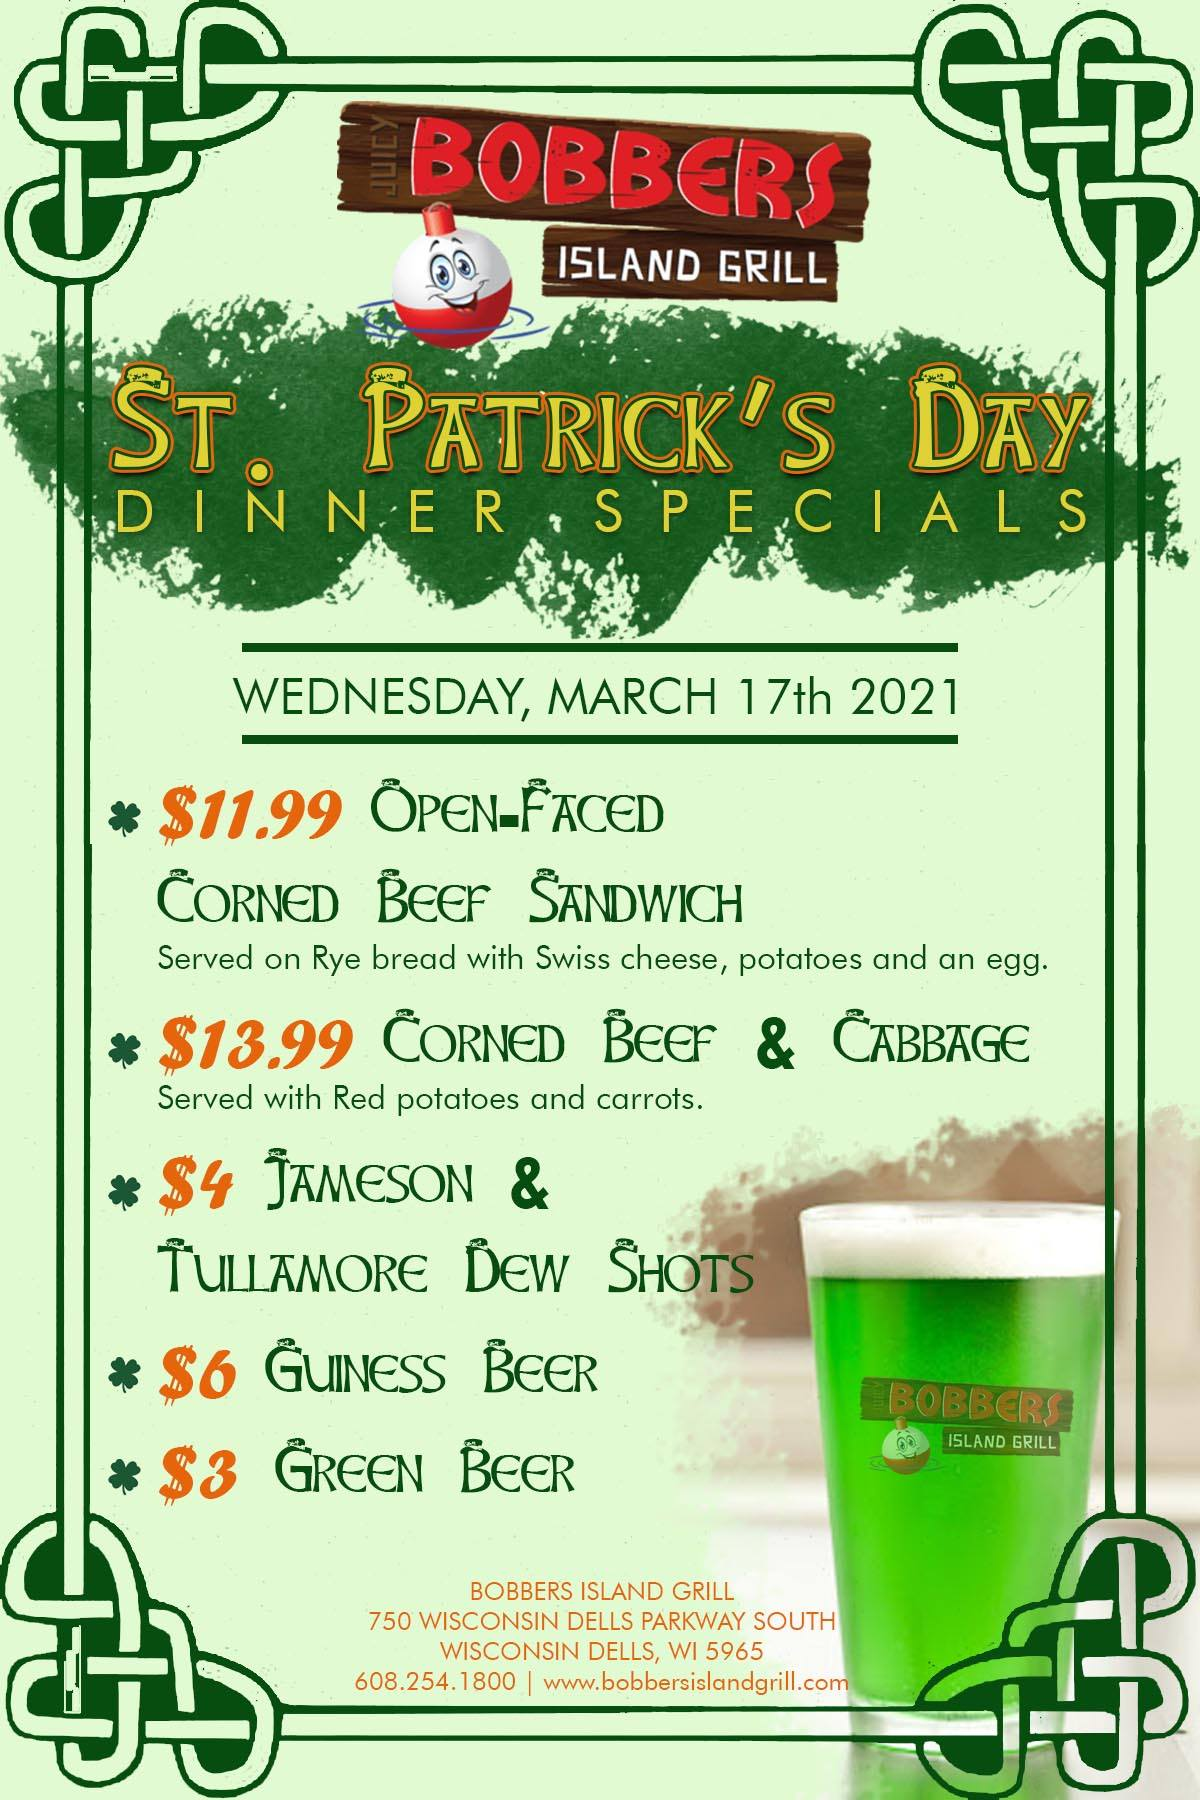 St Patrick's Day At Bobbers Island Grill In Wisconsin Dells